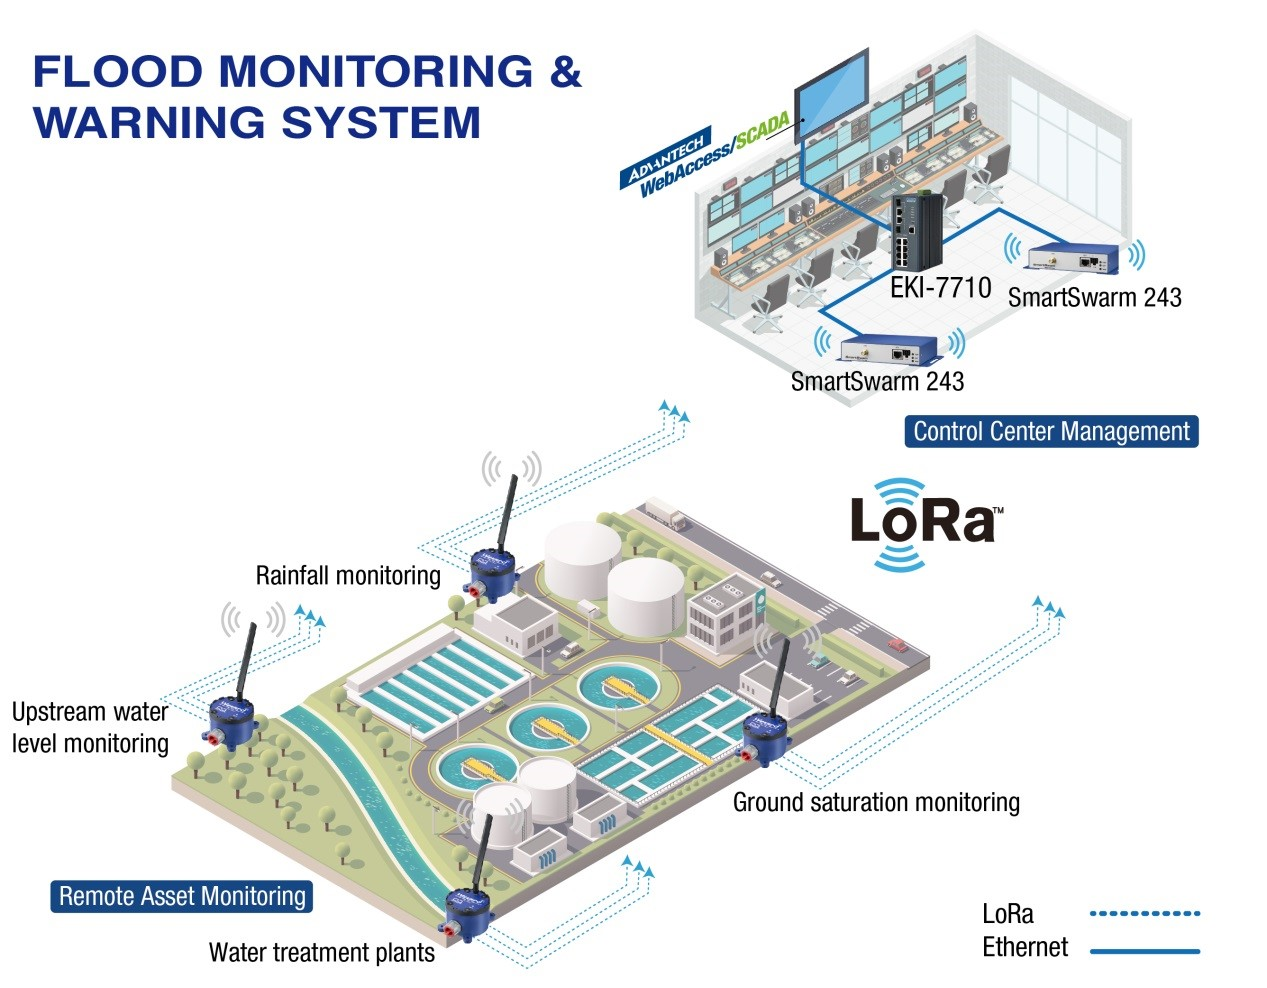 Flood monitoring and warning system